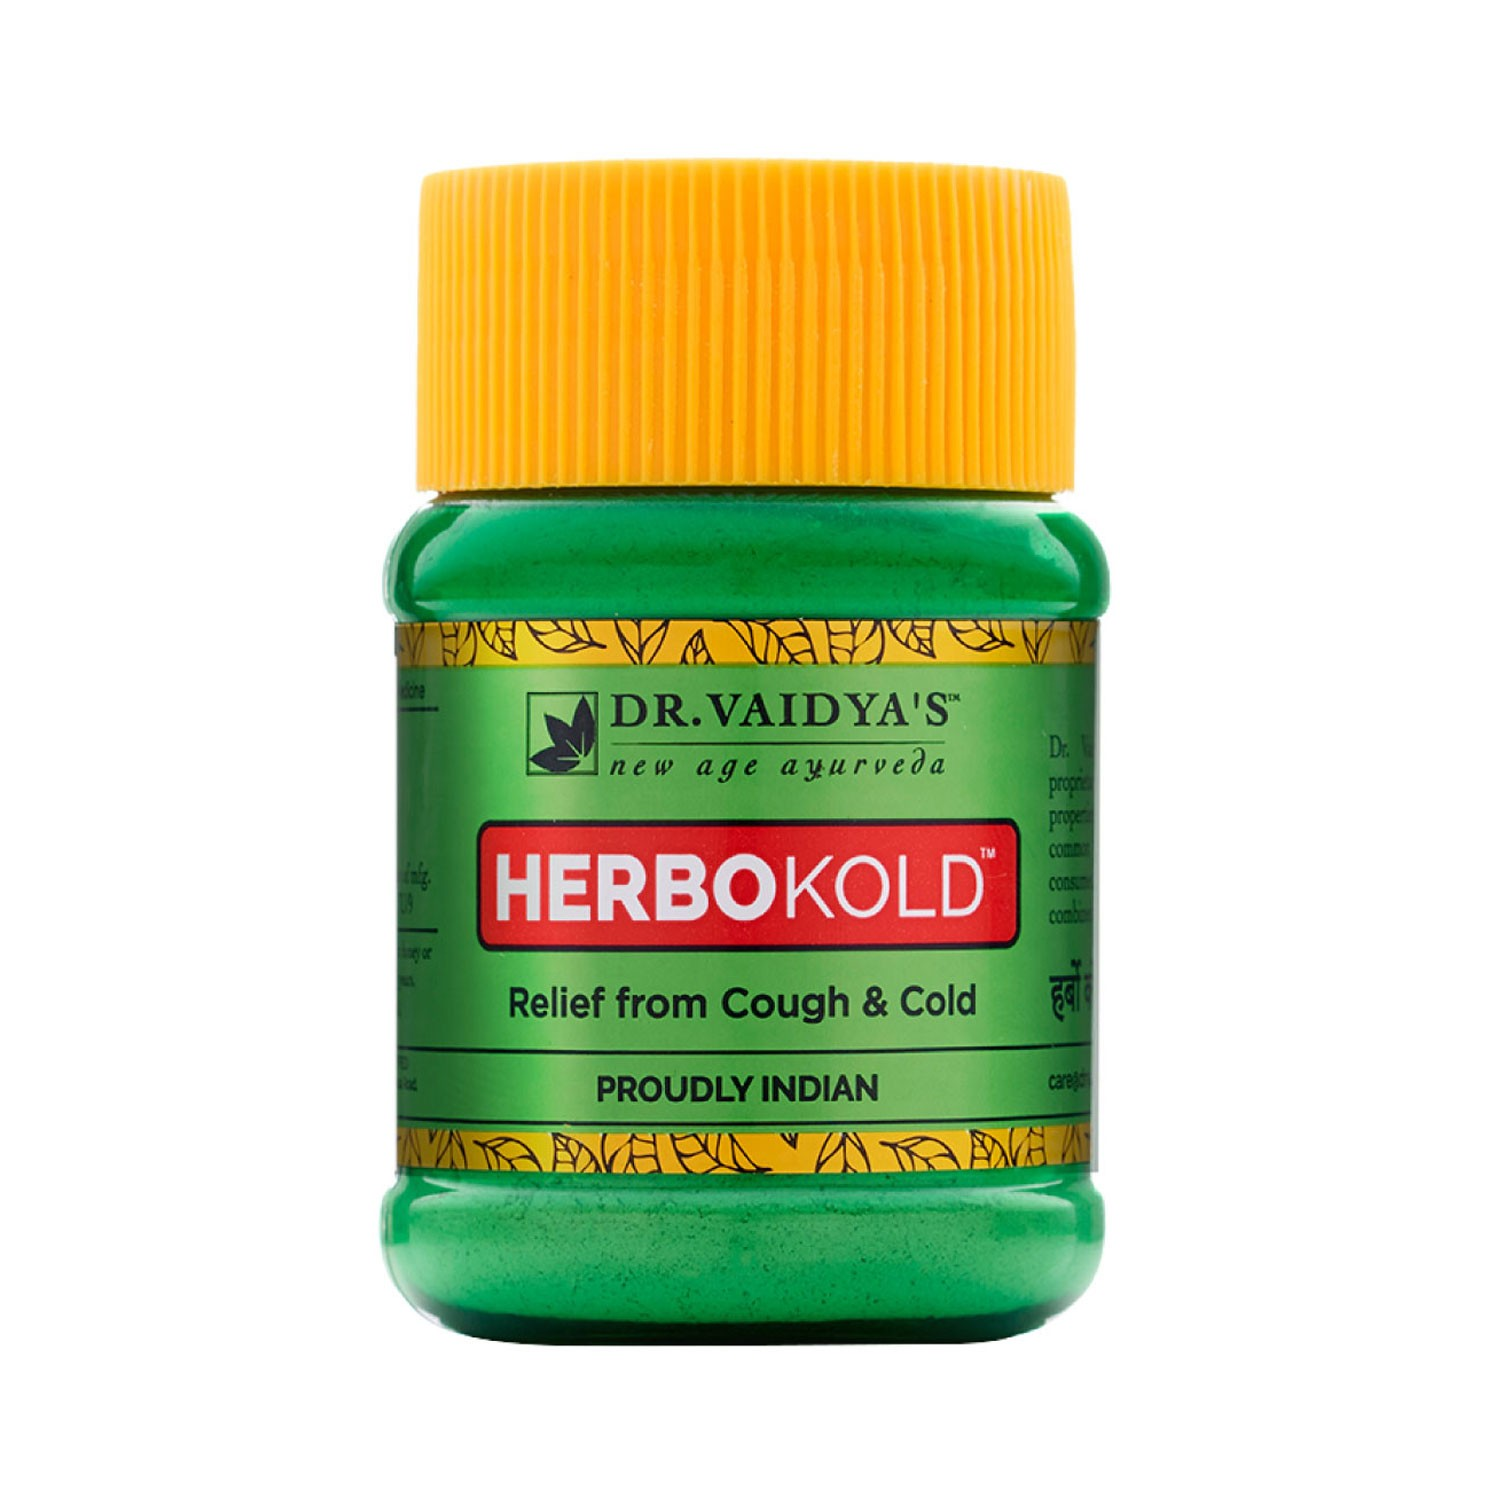 Dr. Vaidya's Herbokold Powder - Ayurvedic Treatment Cold & Cough - Pack of 2